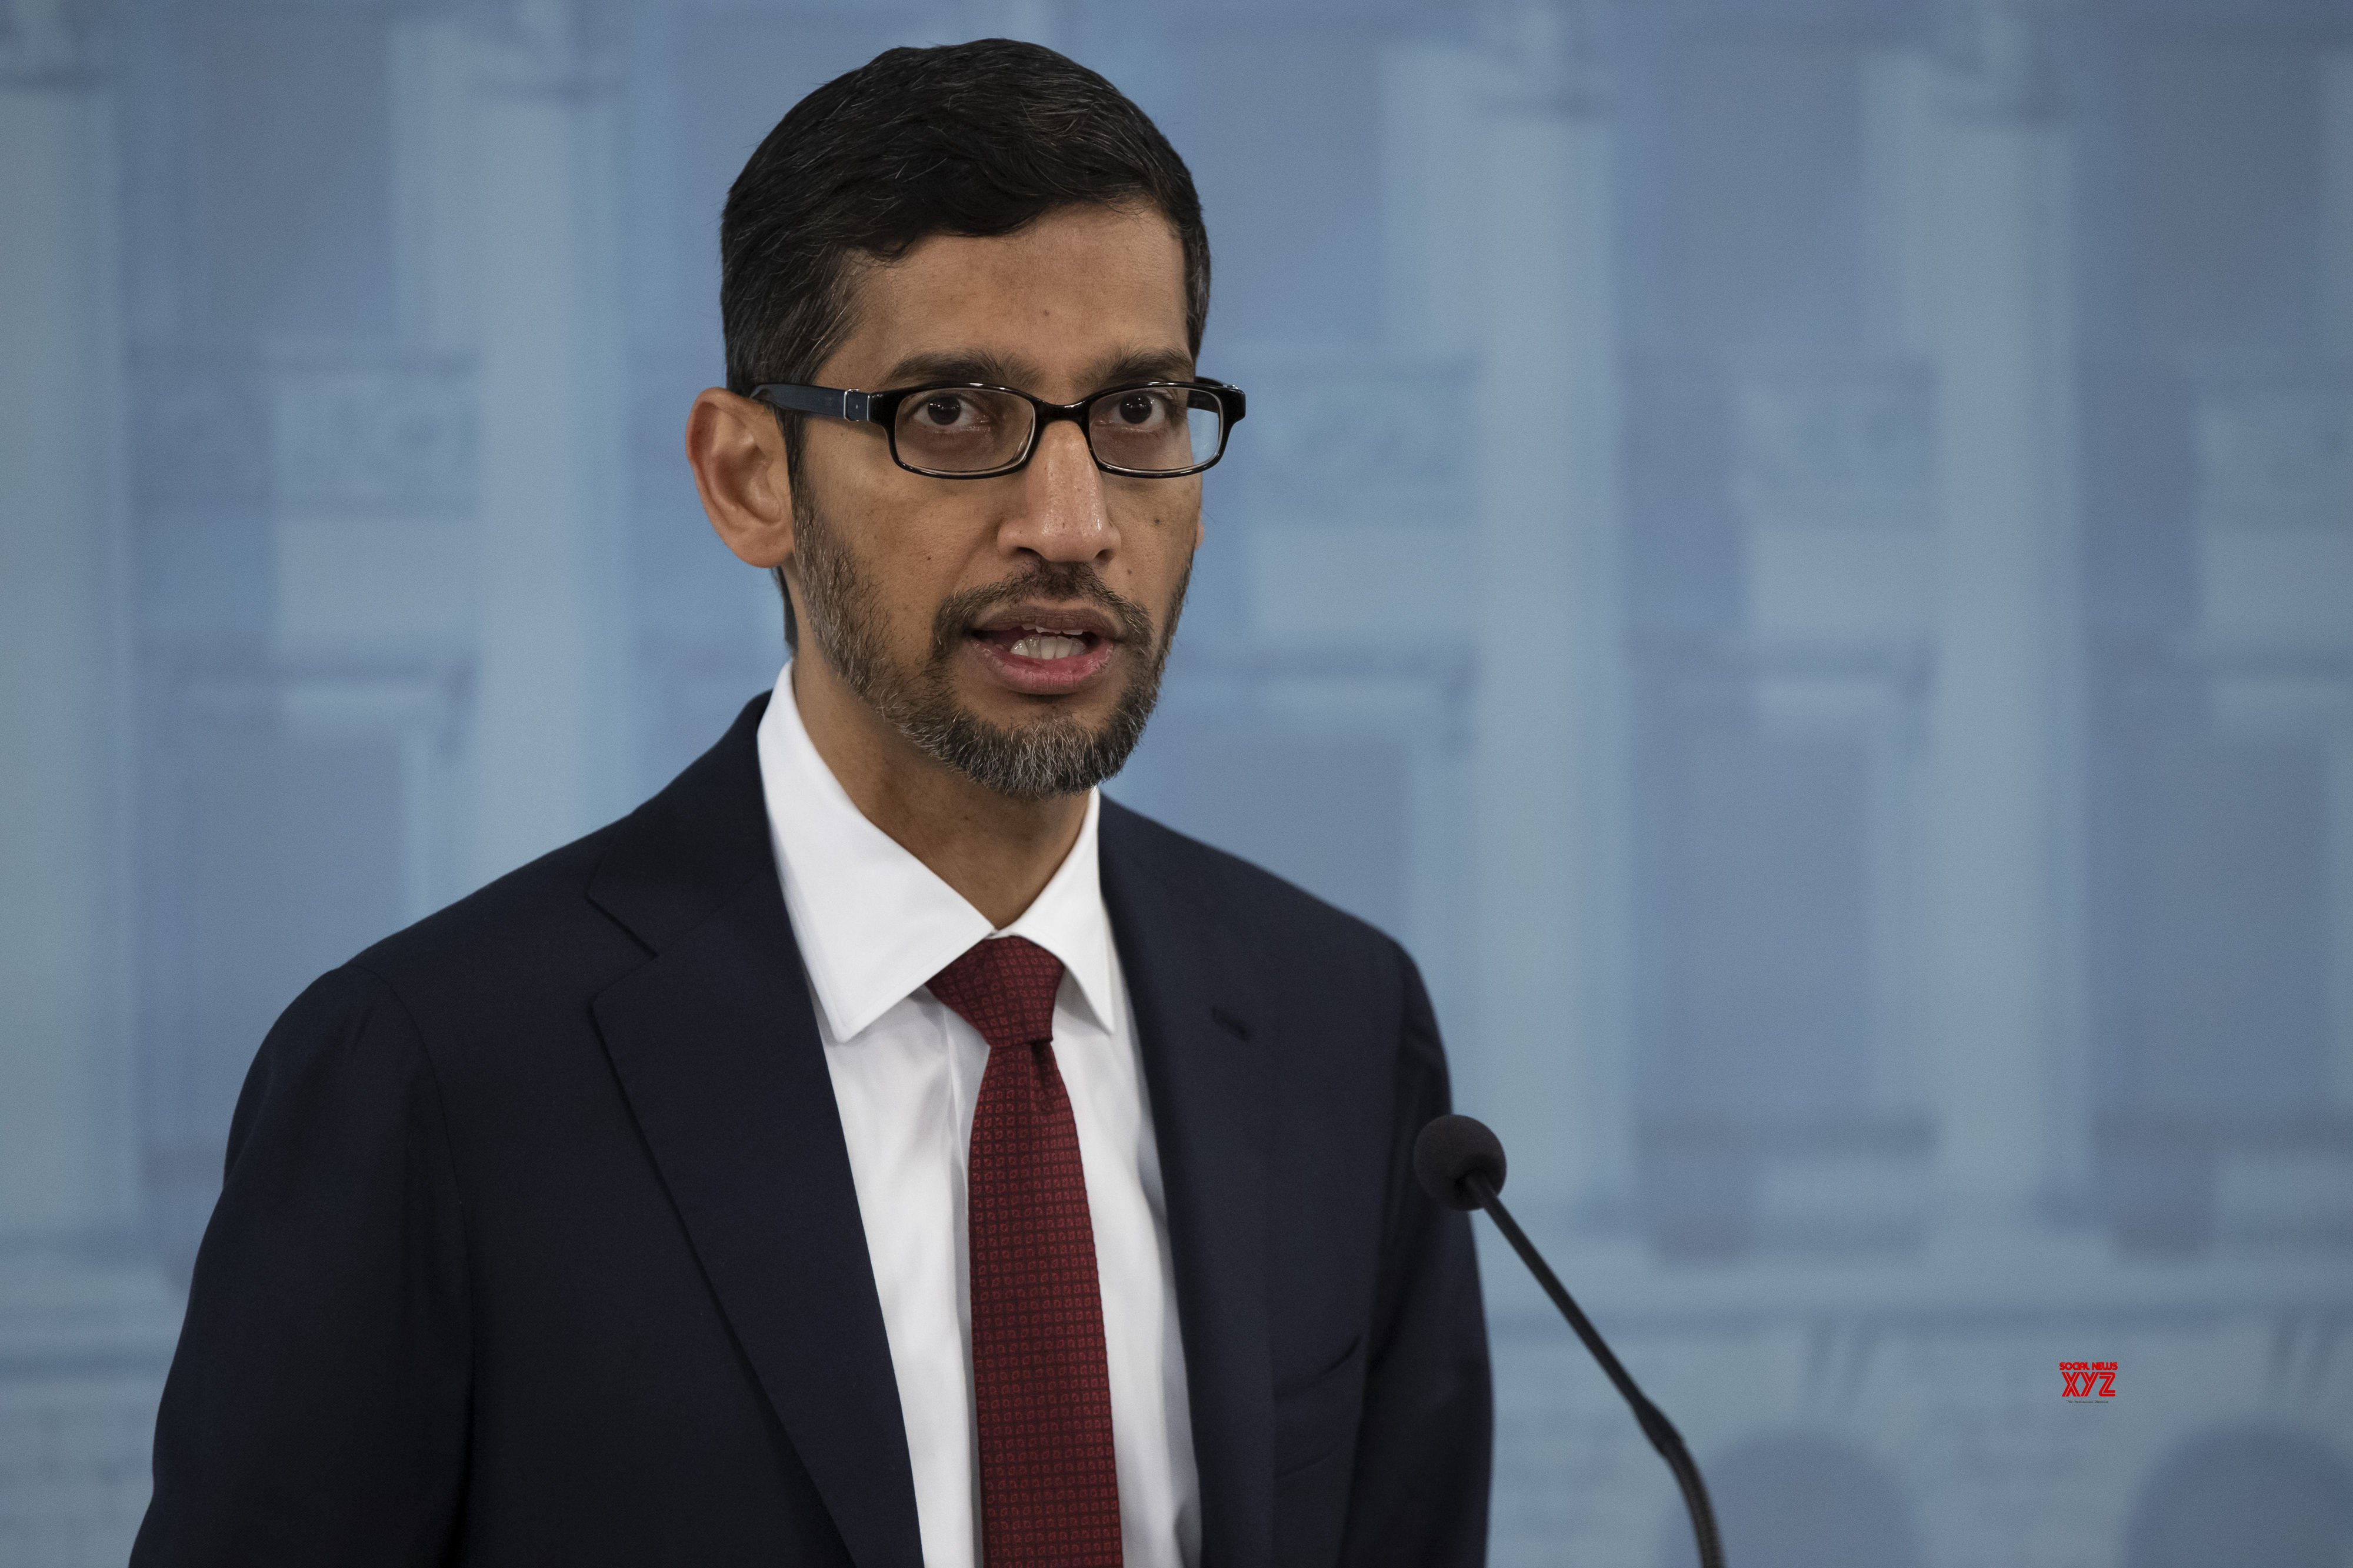 Pichai becomes Alphabet CEO as Google co-founders step down